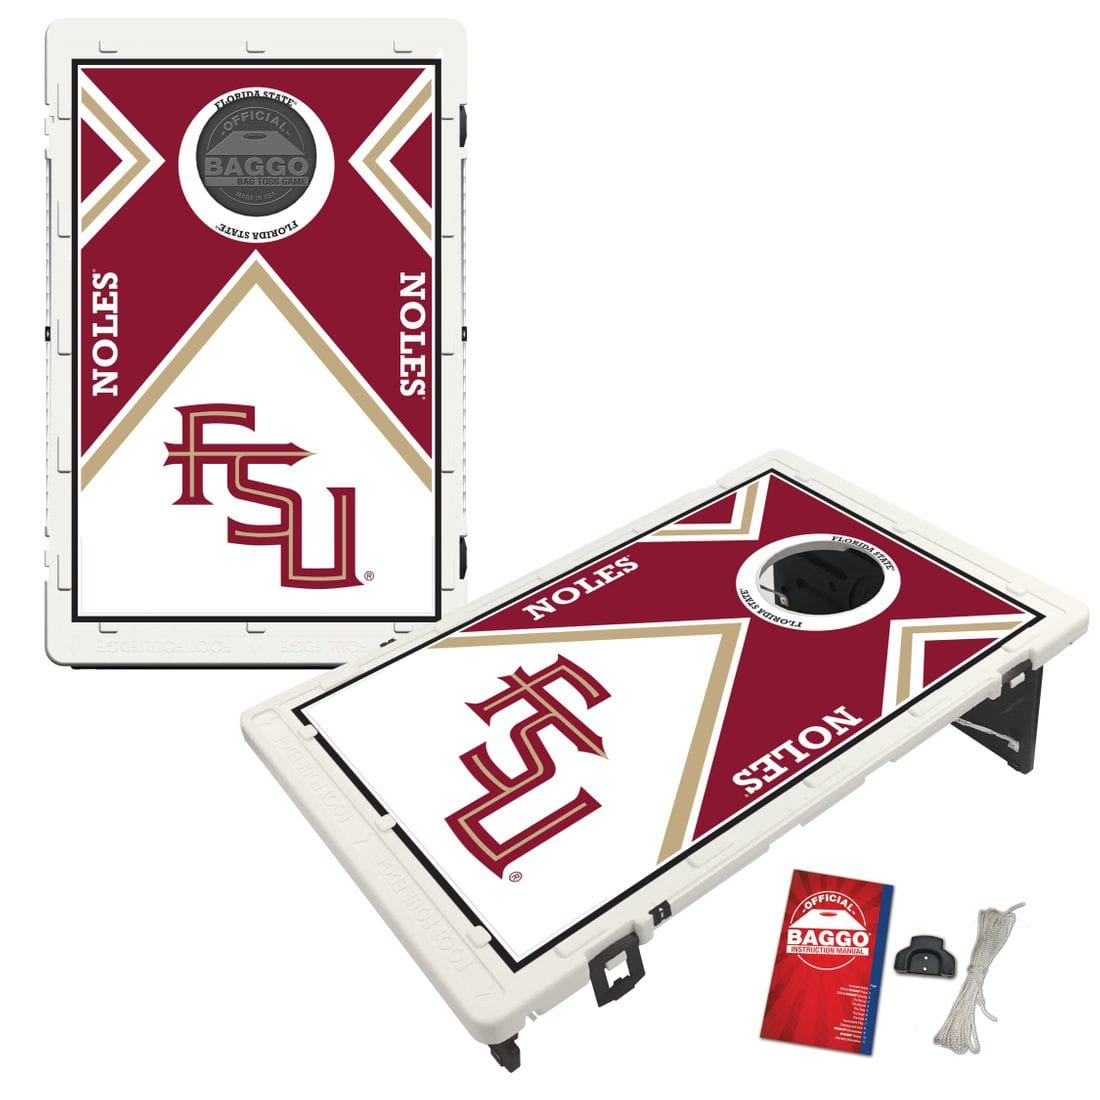 Best FSU Florida State University Bean Bag Toss Games